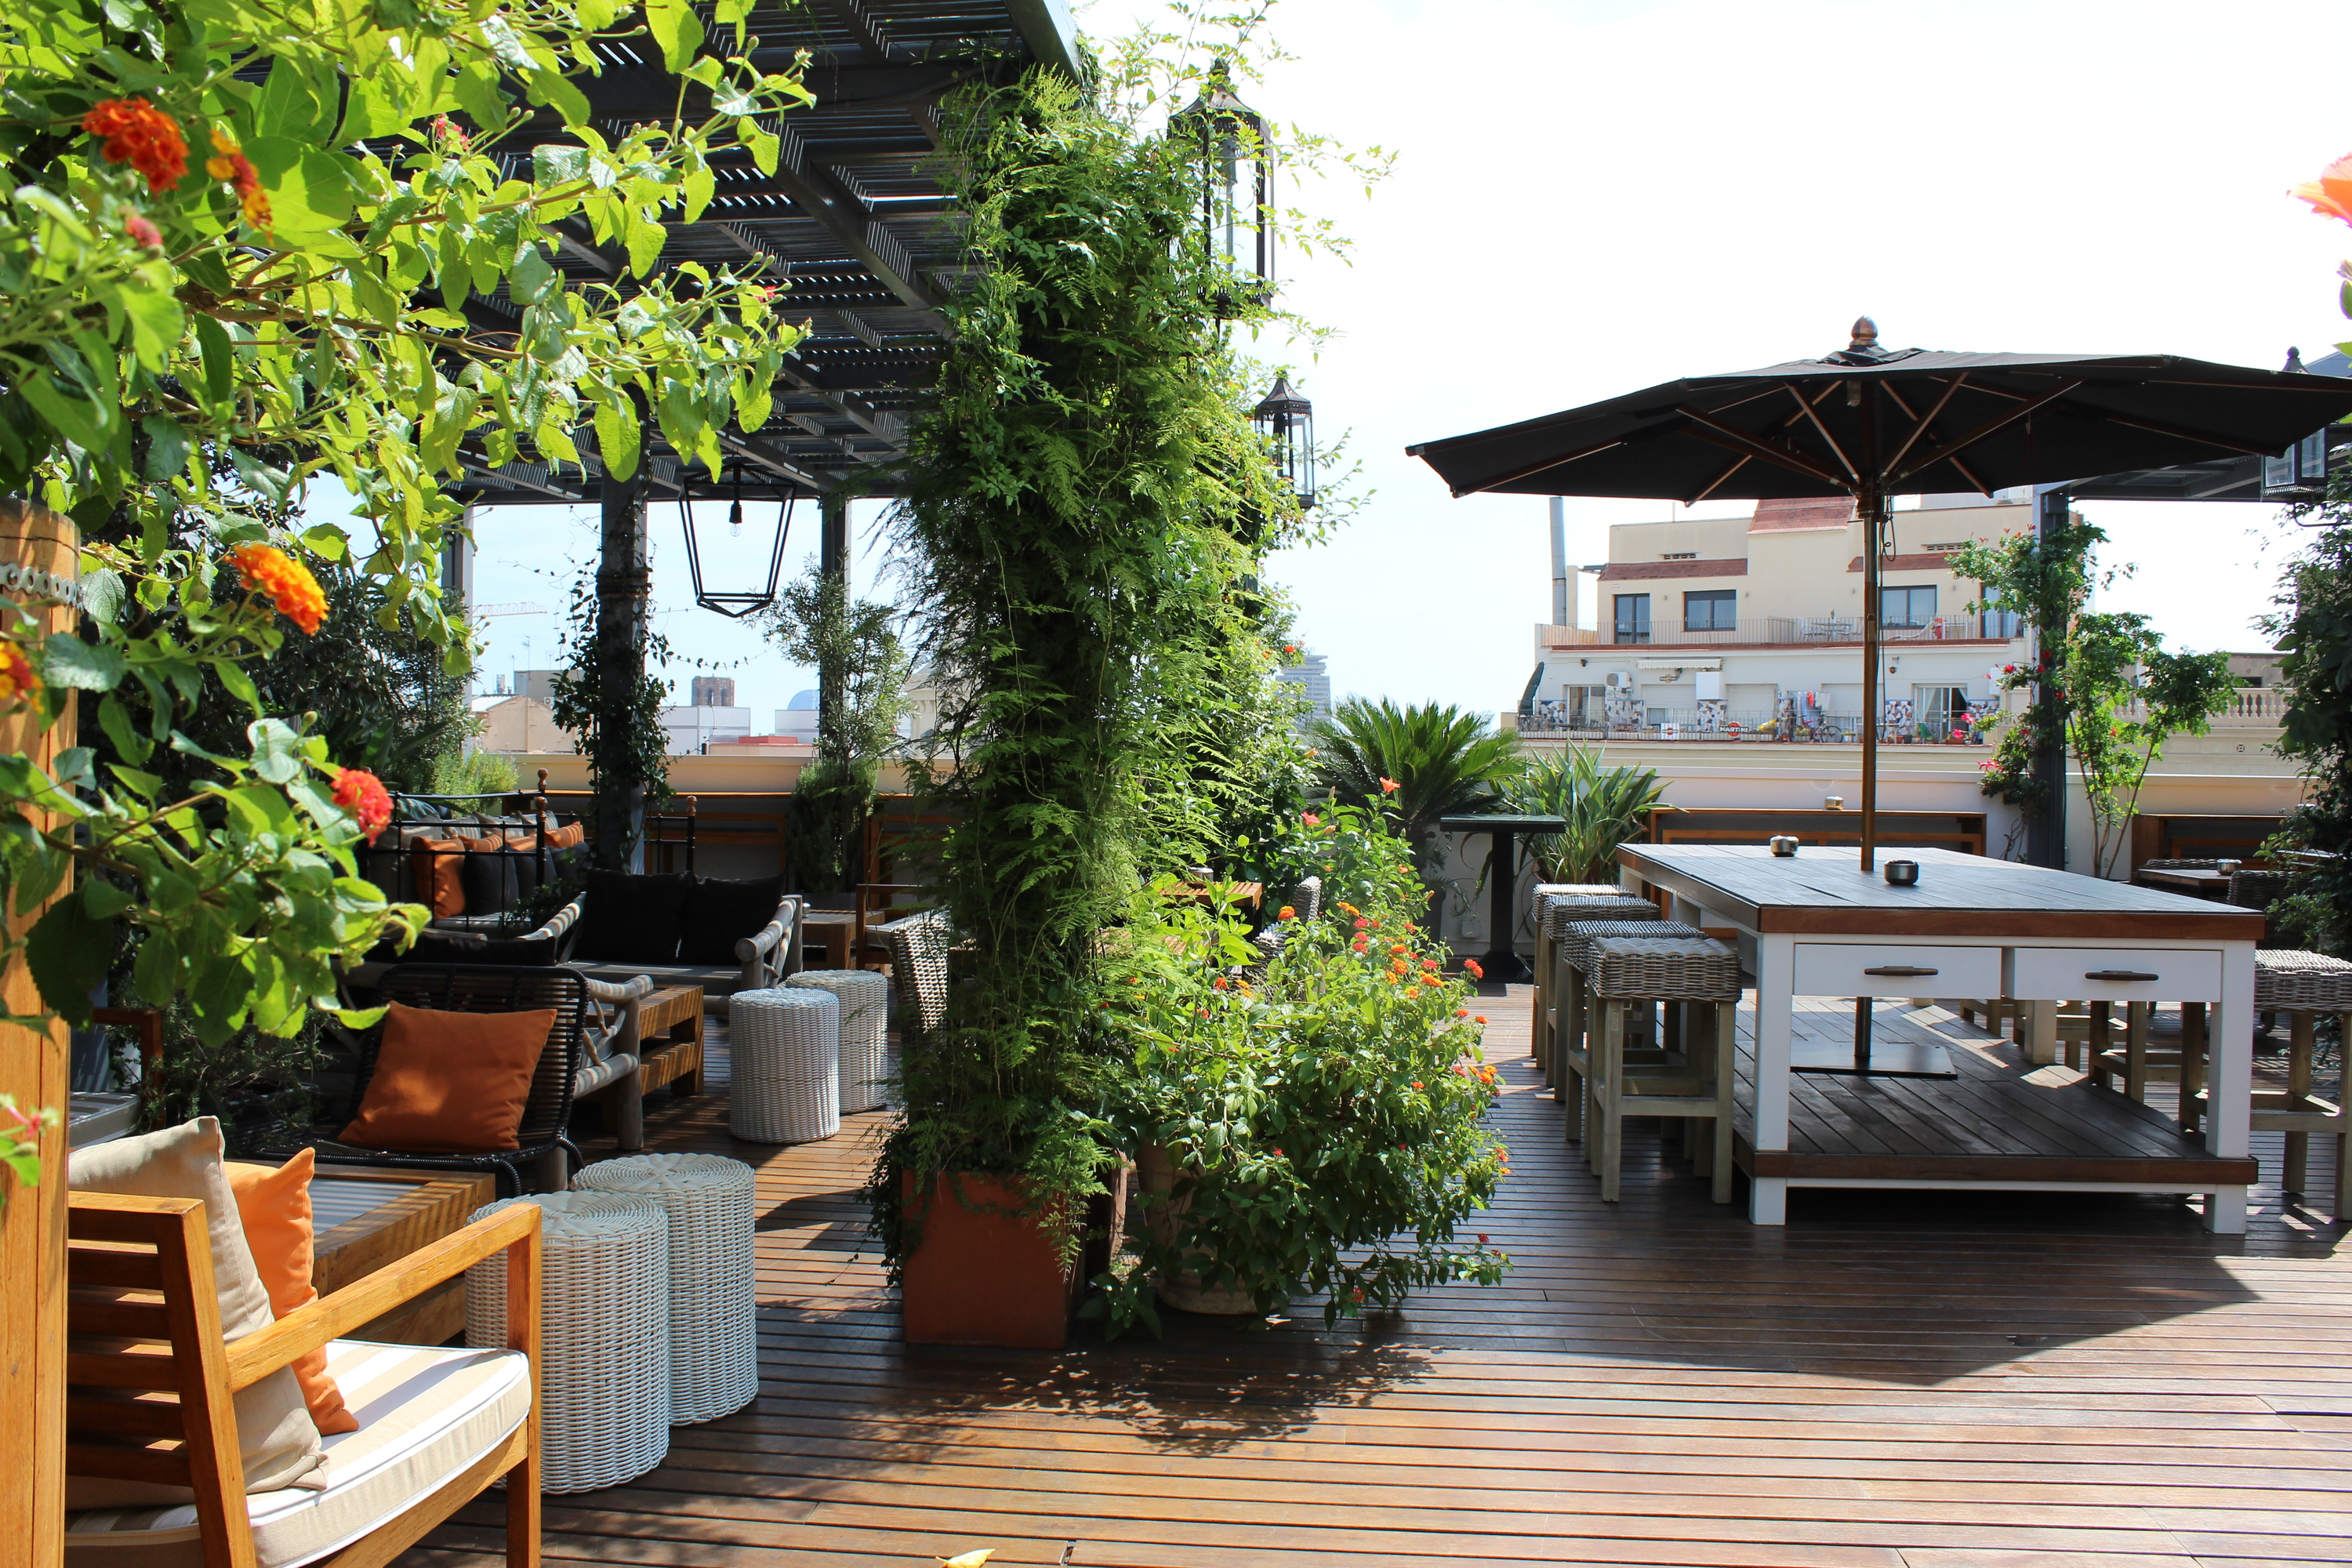 Barcelona rooftop bars drinks with a view for The terrace bar